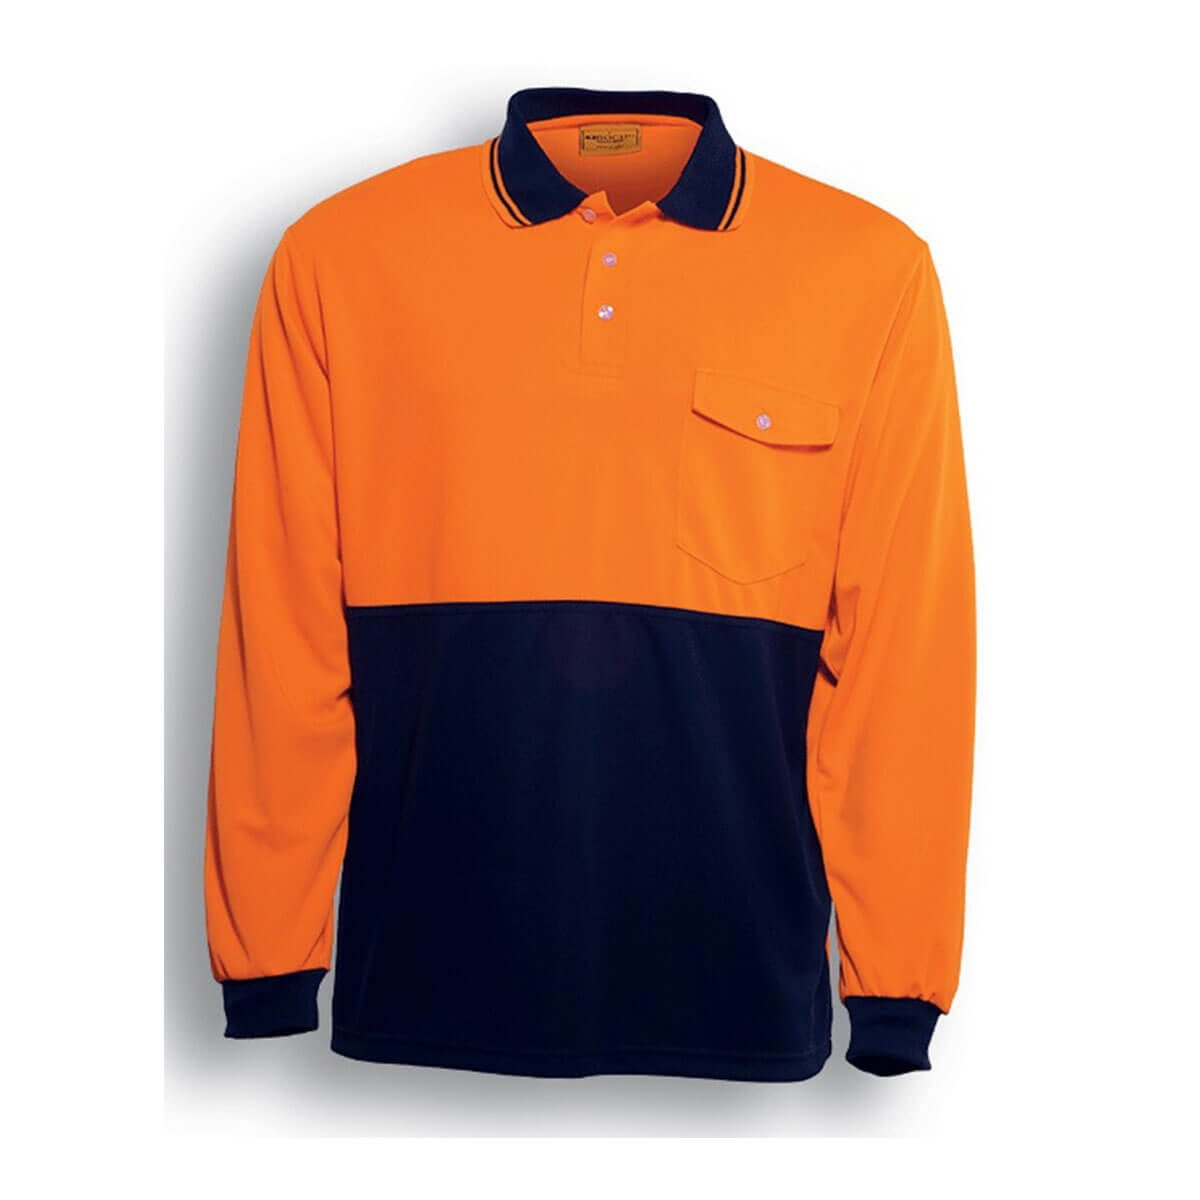 HI-VIS SAFETY POLO – LONG SLEEVE-Orange / Navy